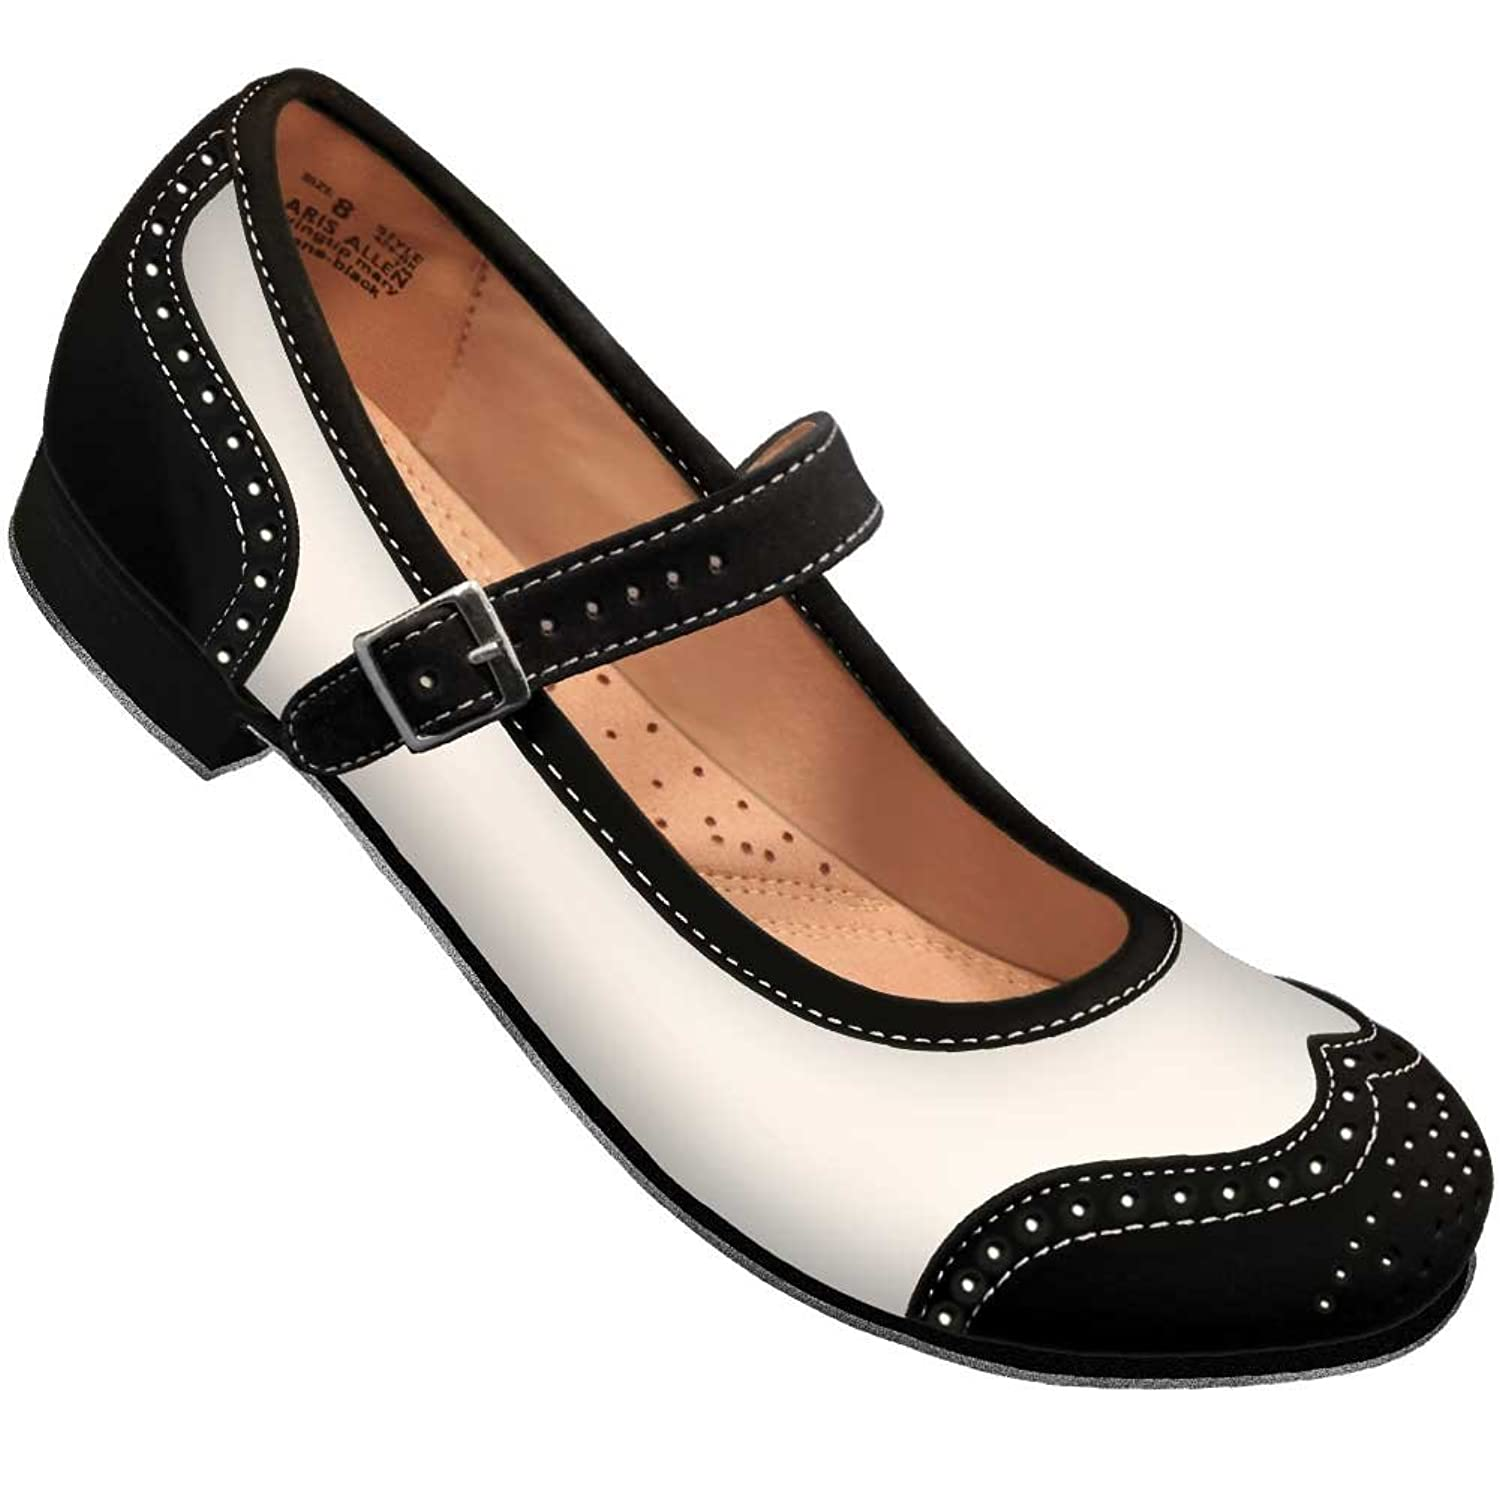 Rockabilly Men's Clothing Aris Allen Black and Ivory Snub Toe Mary Jane Wingtips $48.95 AT vintagedancer.com